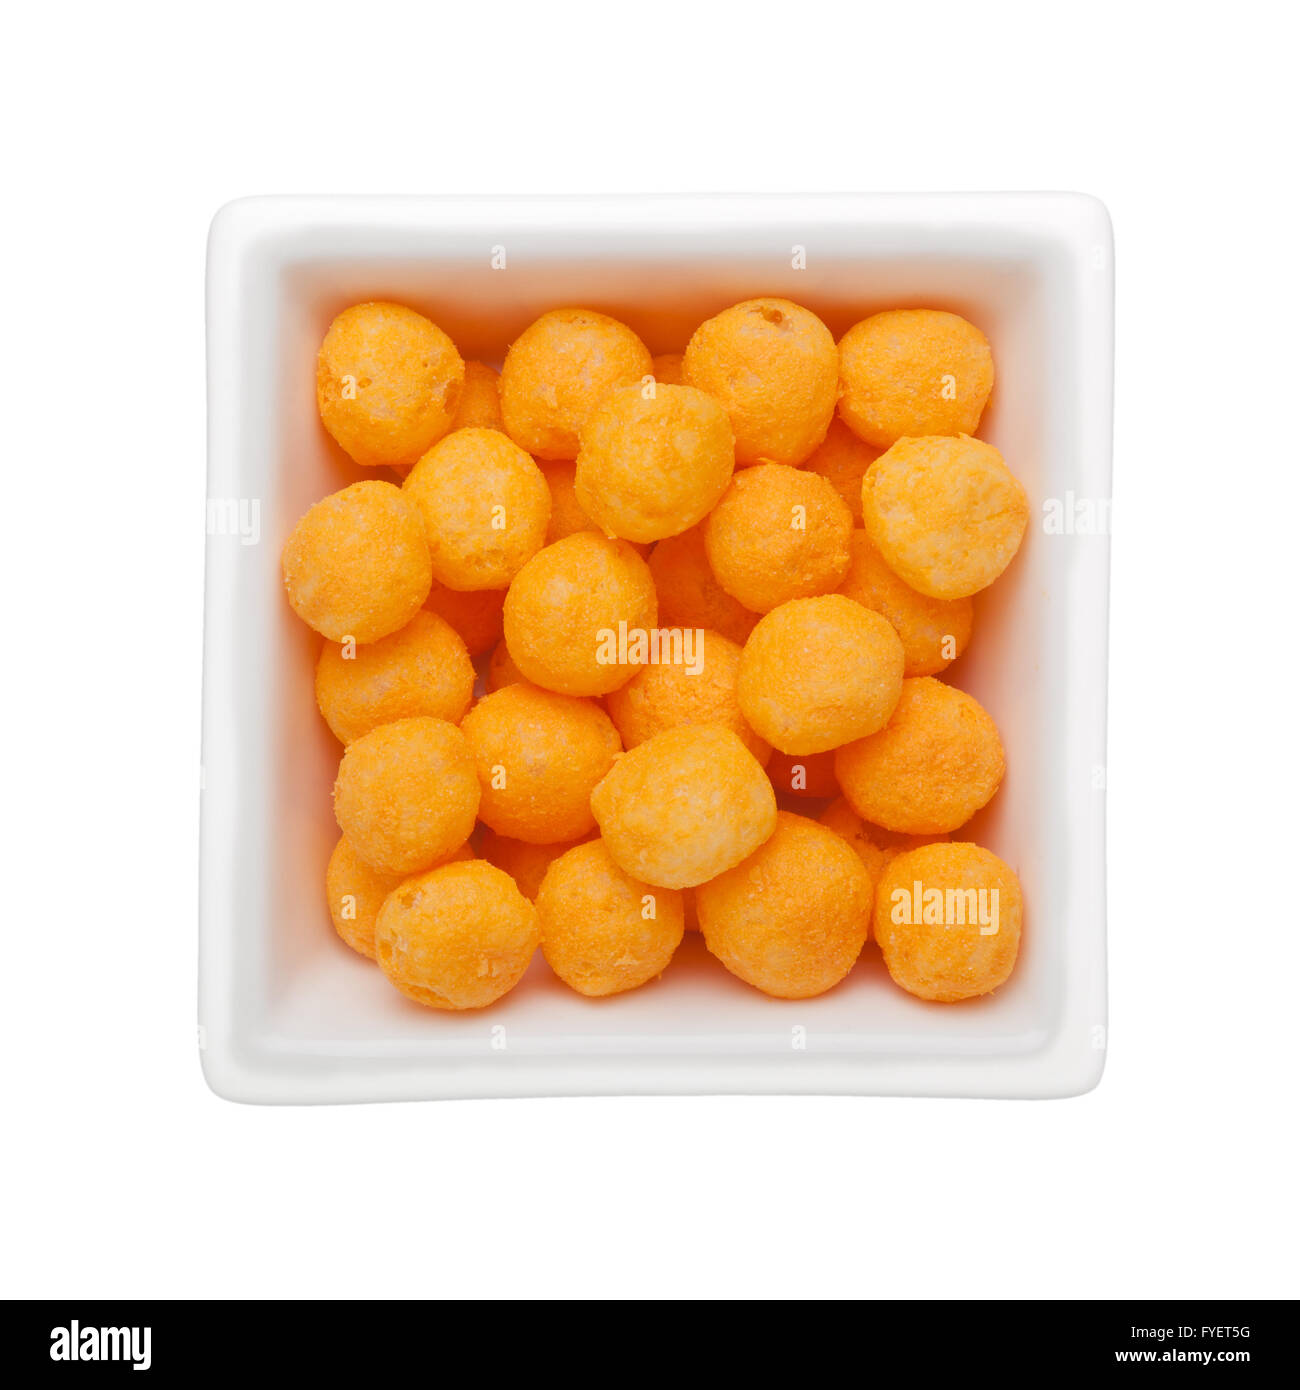 Cheese flavor corn snack in a square bowl isolated on white background Stock Photo